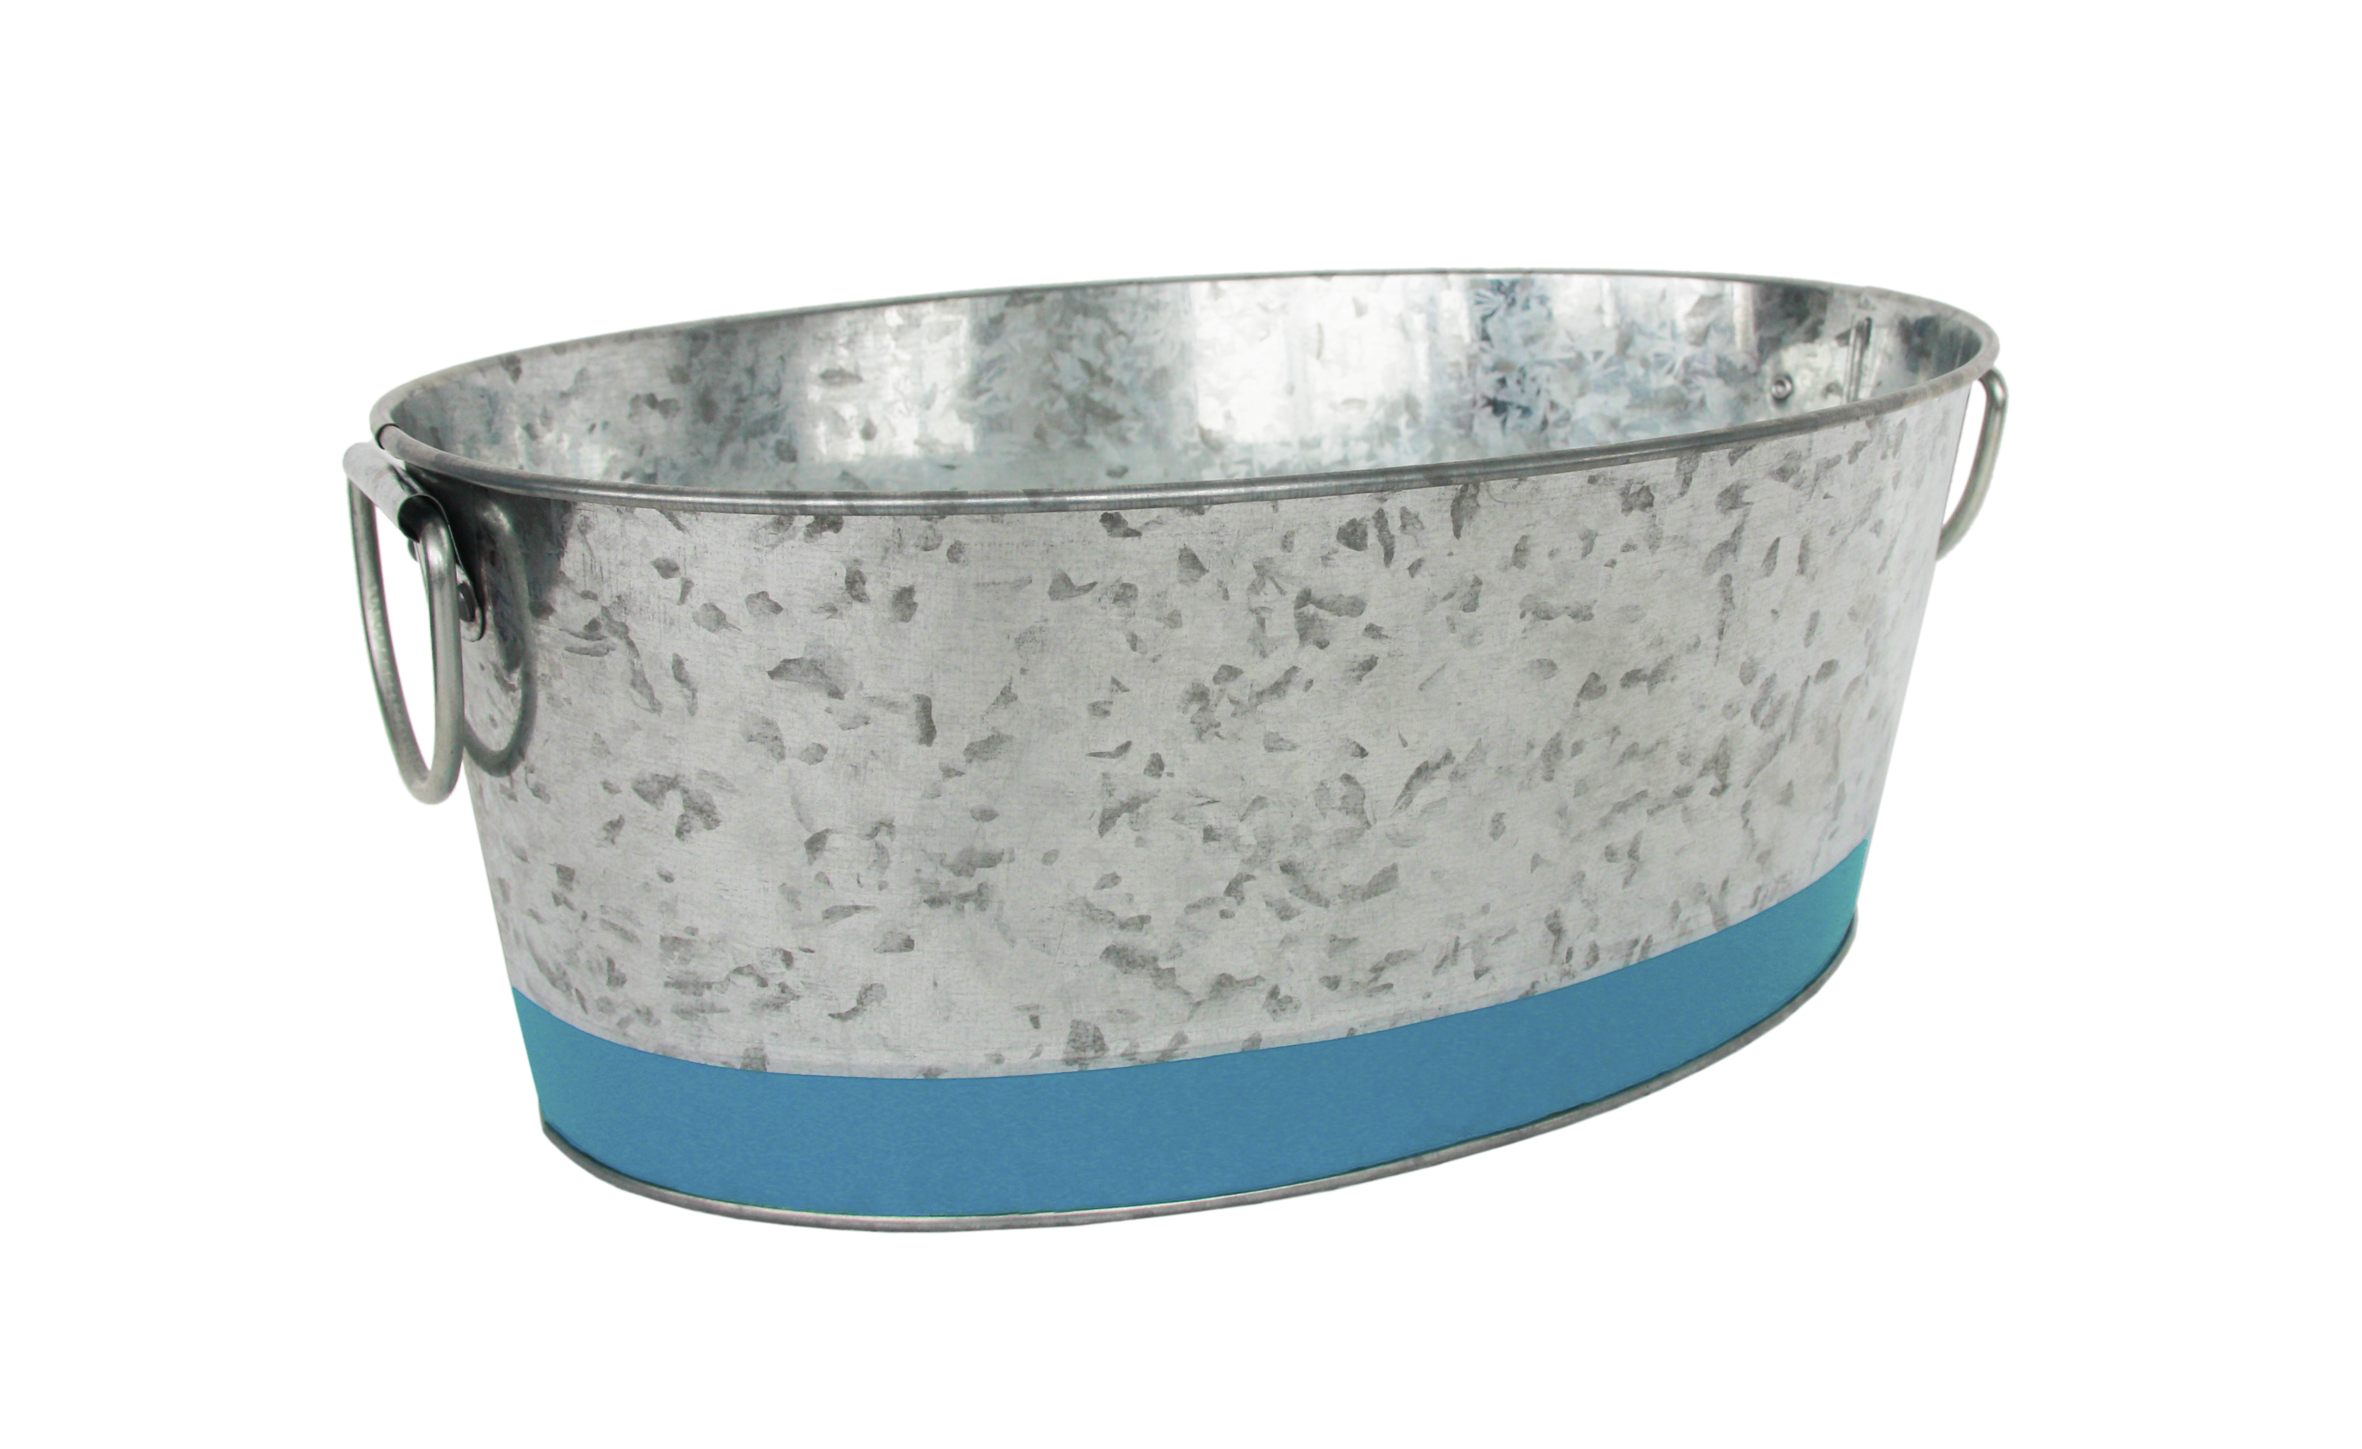 Mainstays Teal Oval Tub